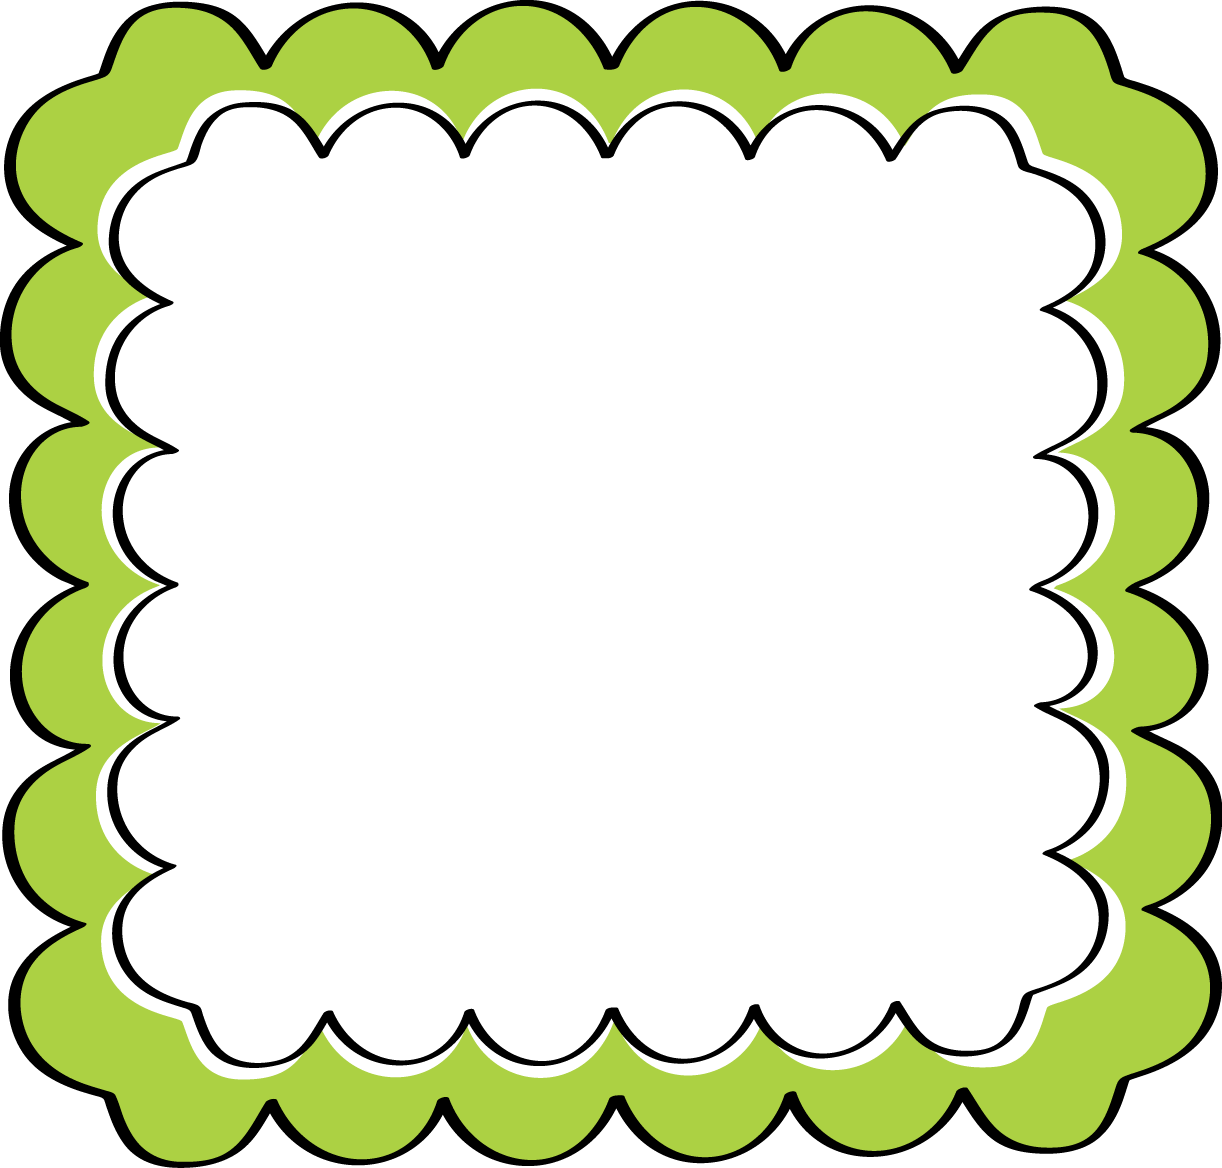 Frame borders clipart. School theme border green